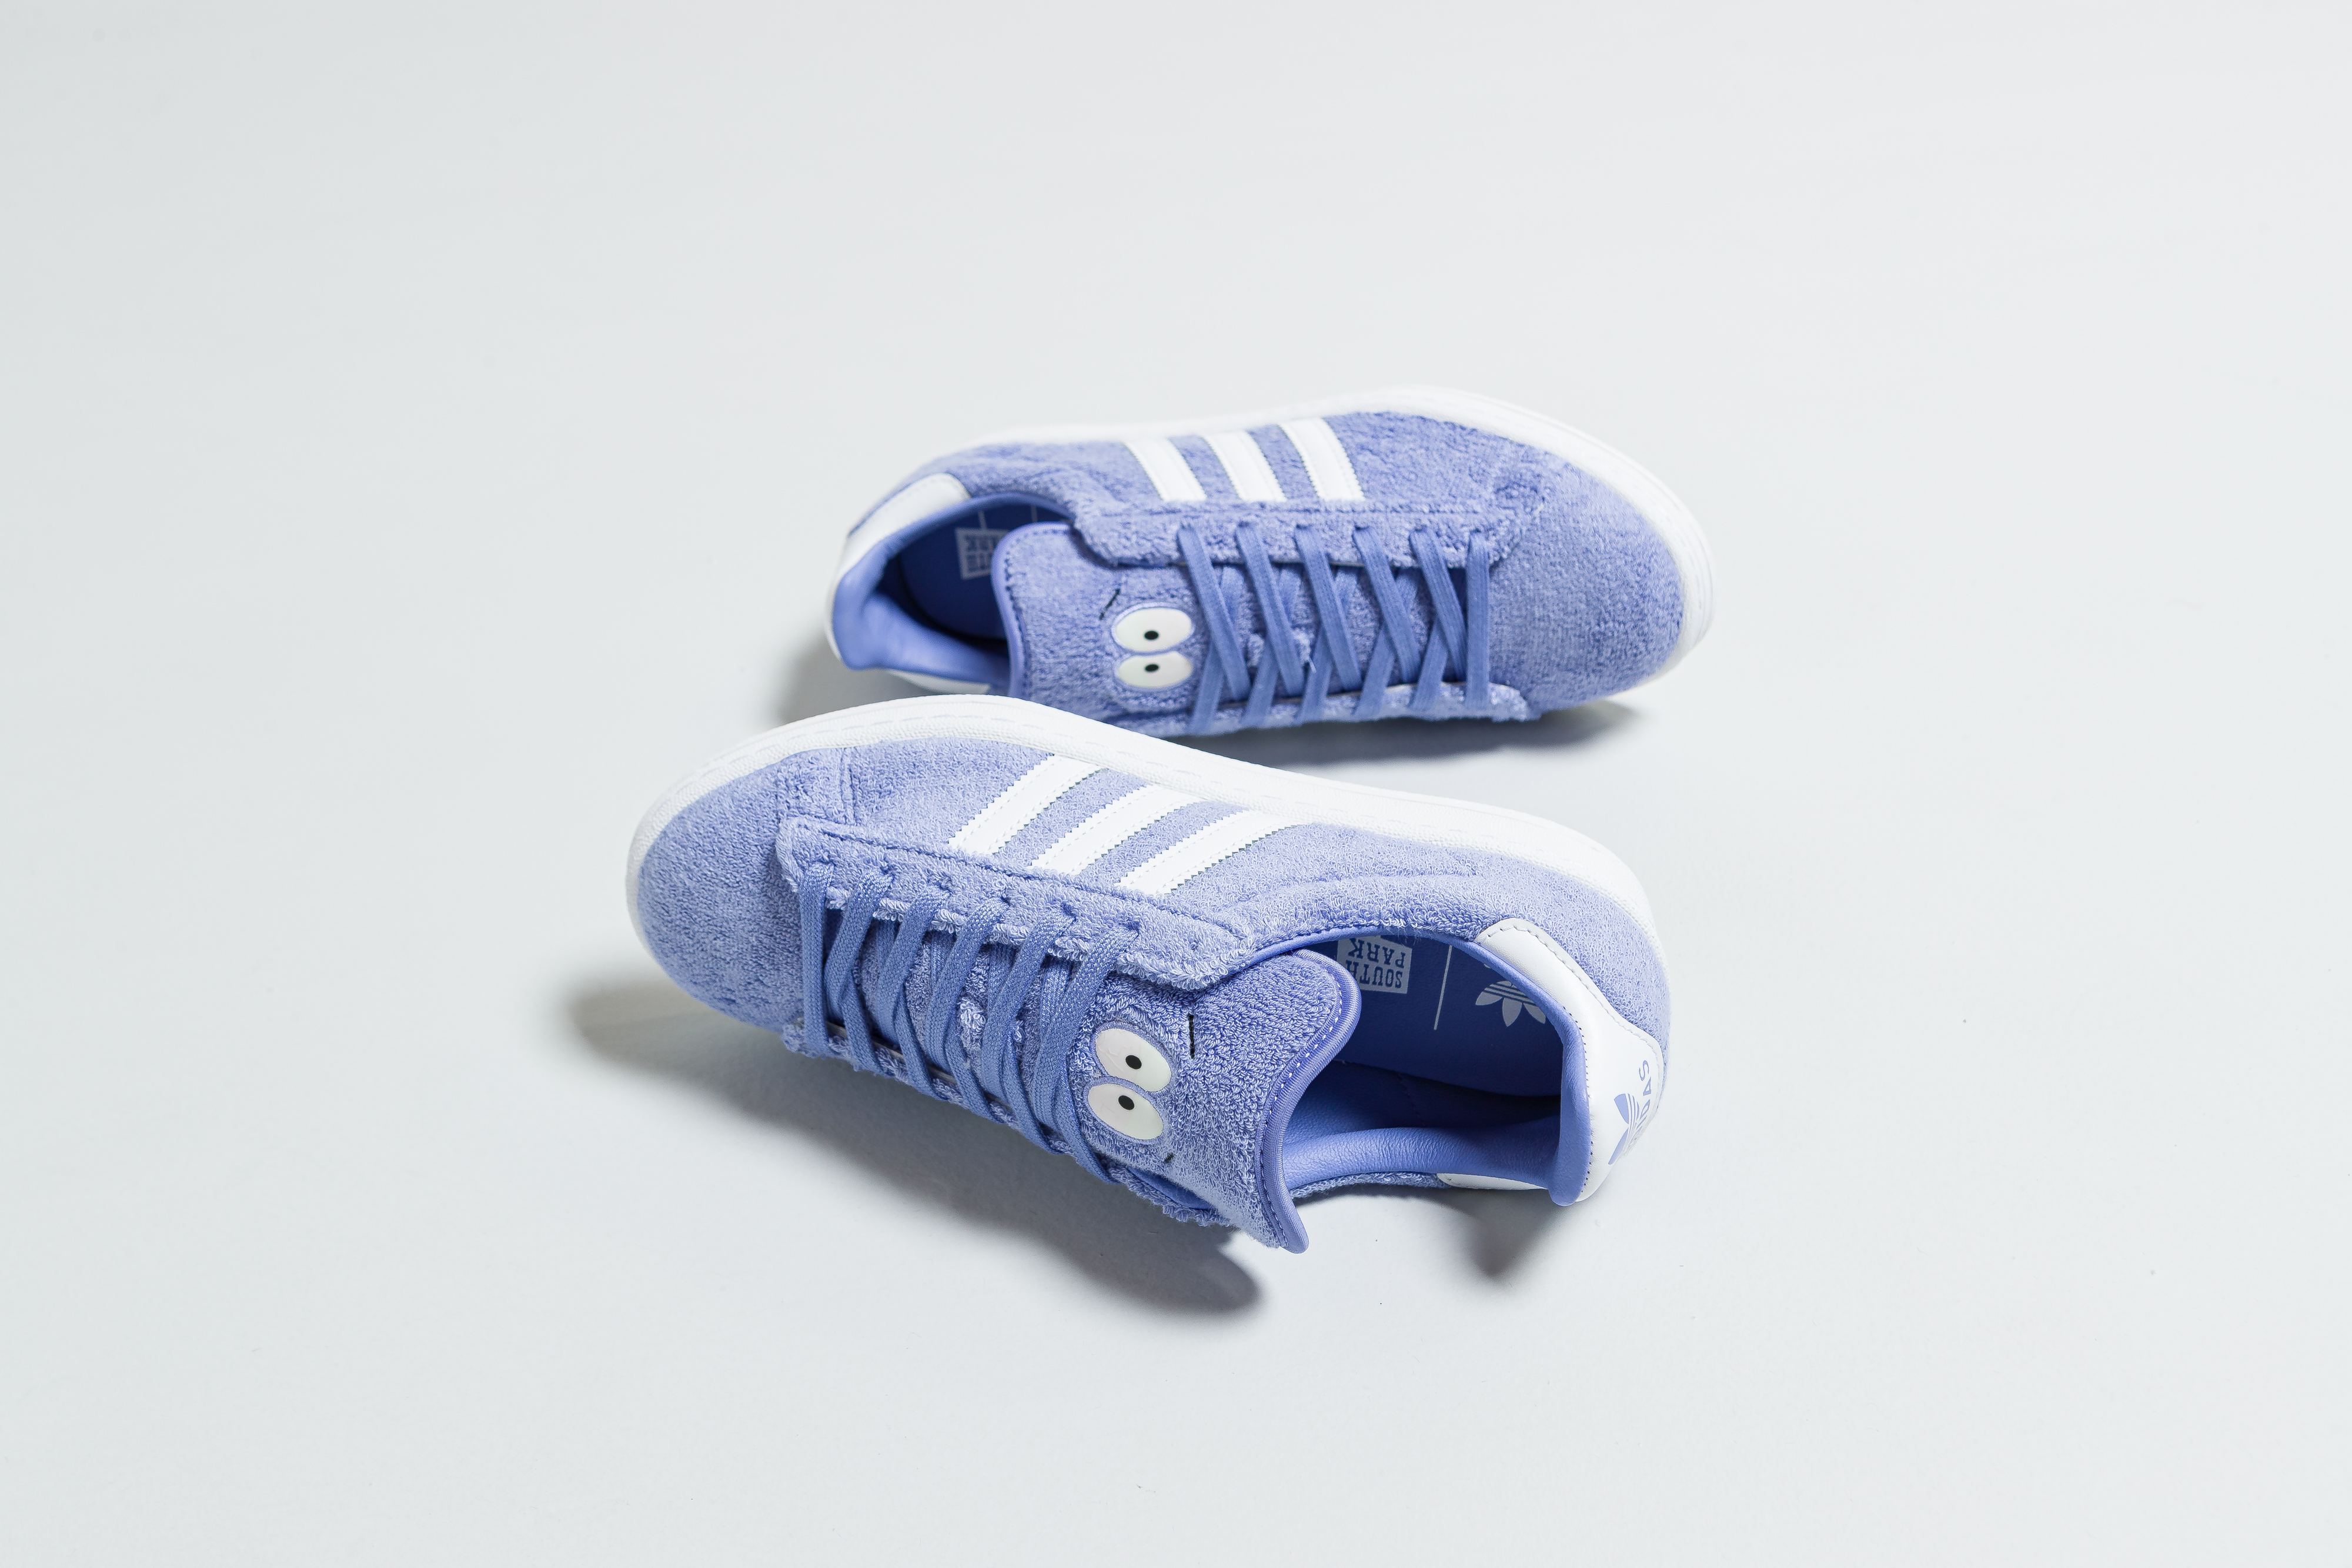 Up There Launches - adidas Originals X South Park Campus 80's 'Towelie'